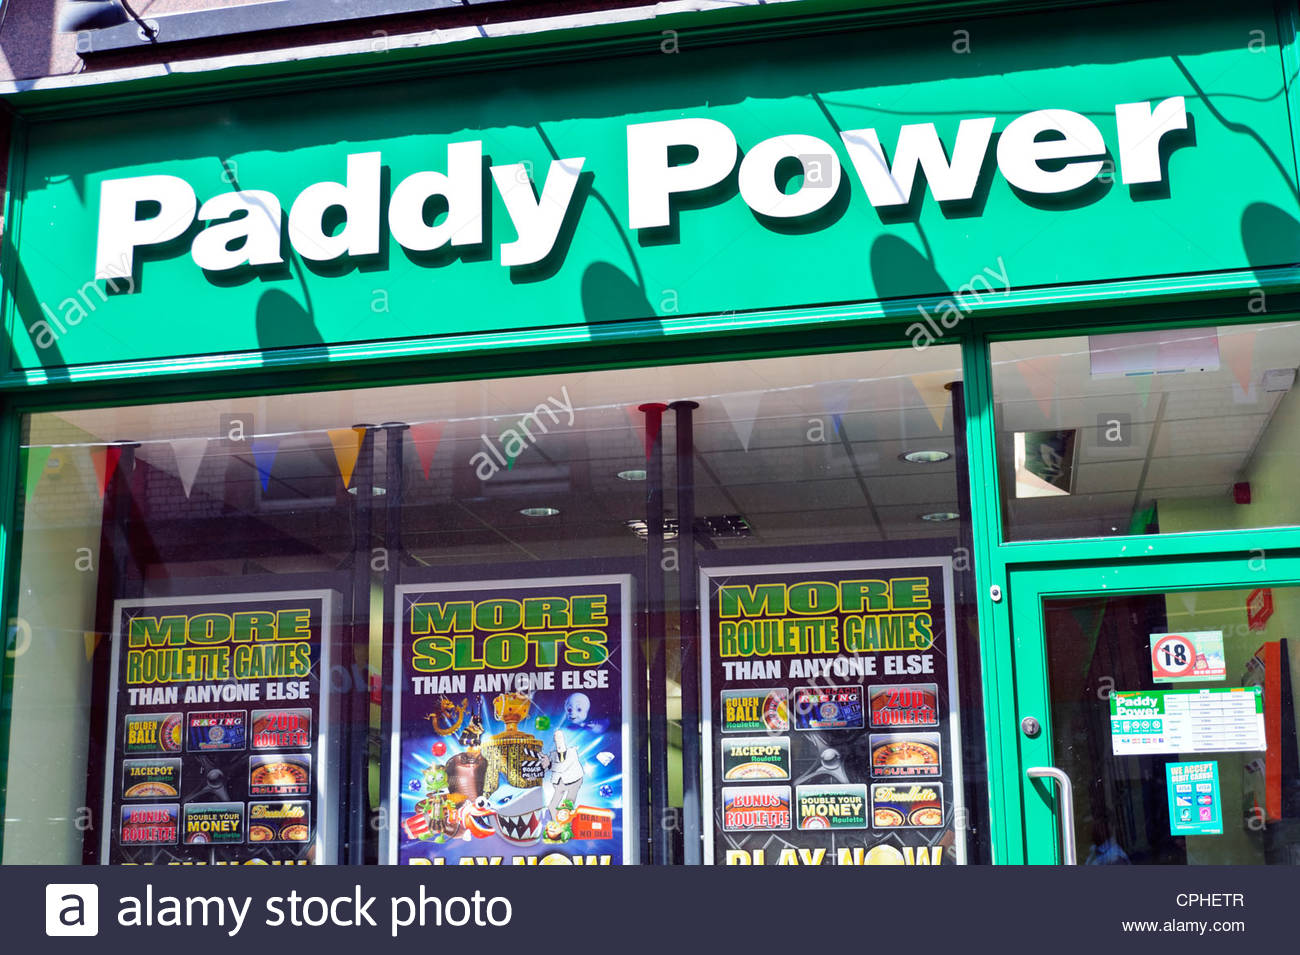 Paddy Power bookies in Reading, Berkshire, UK - Stock Image